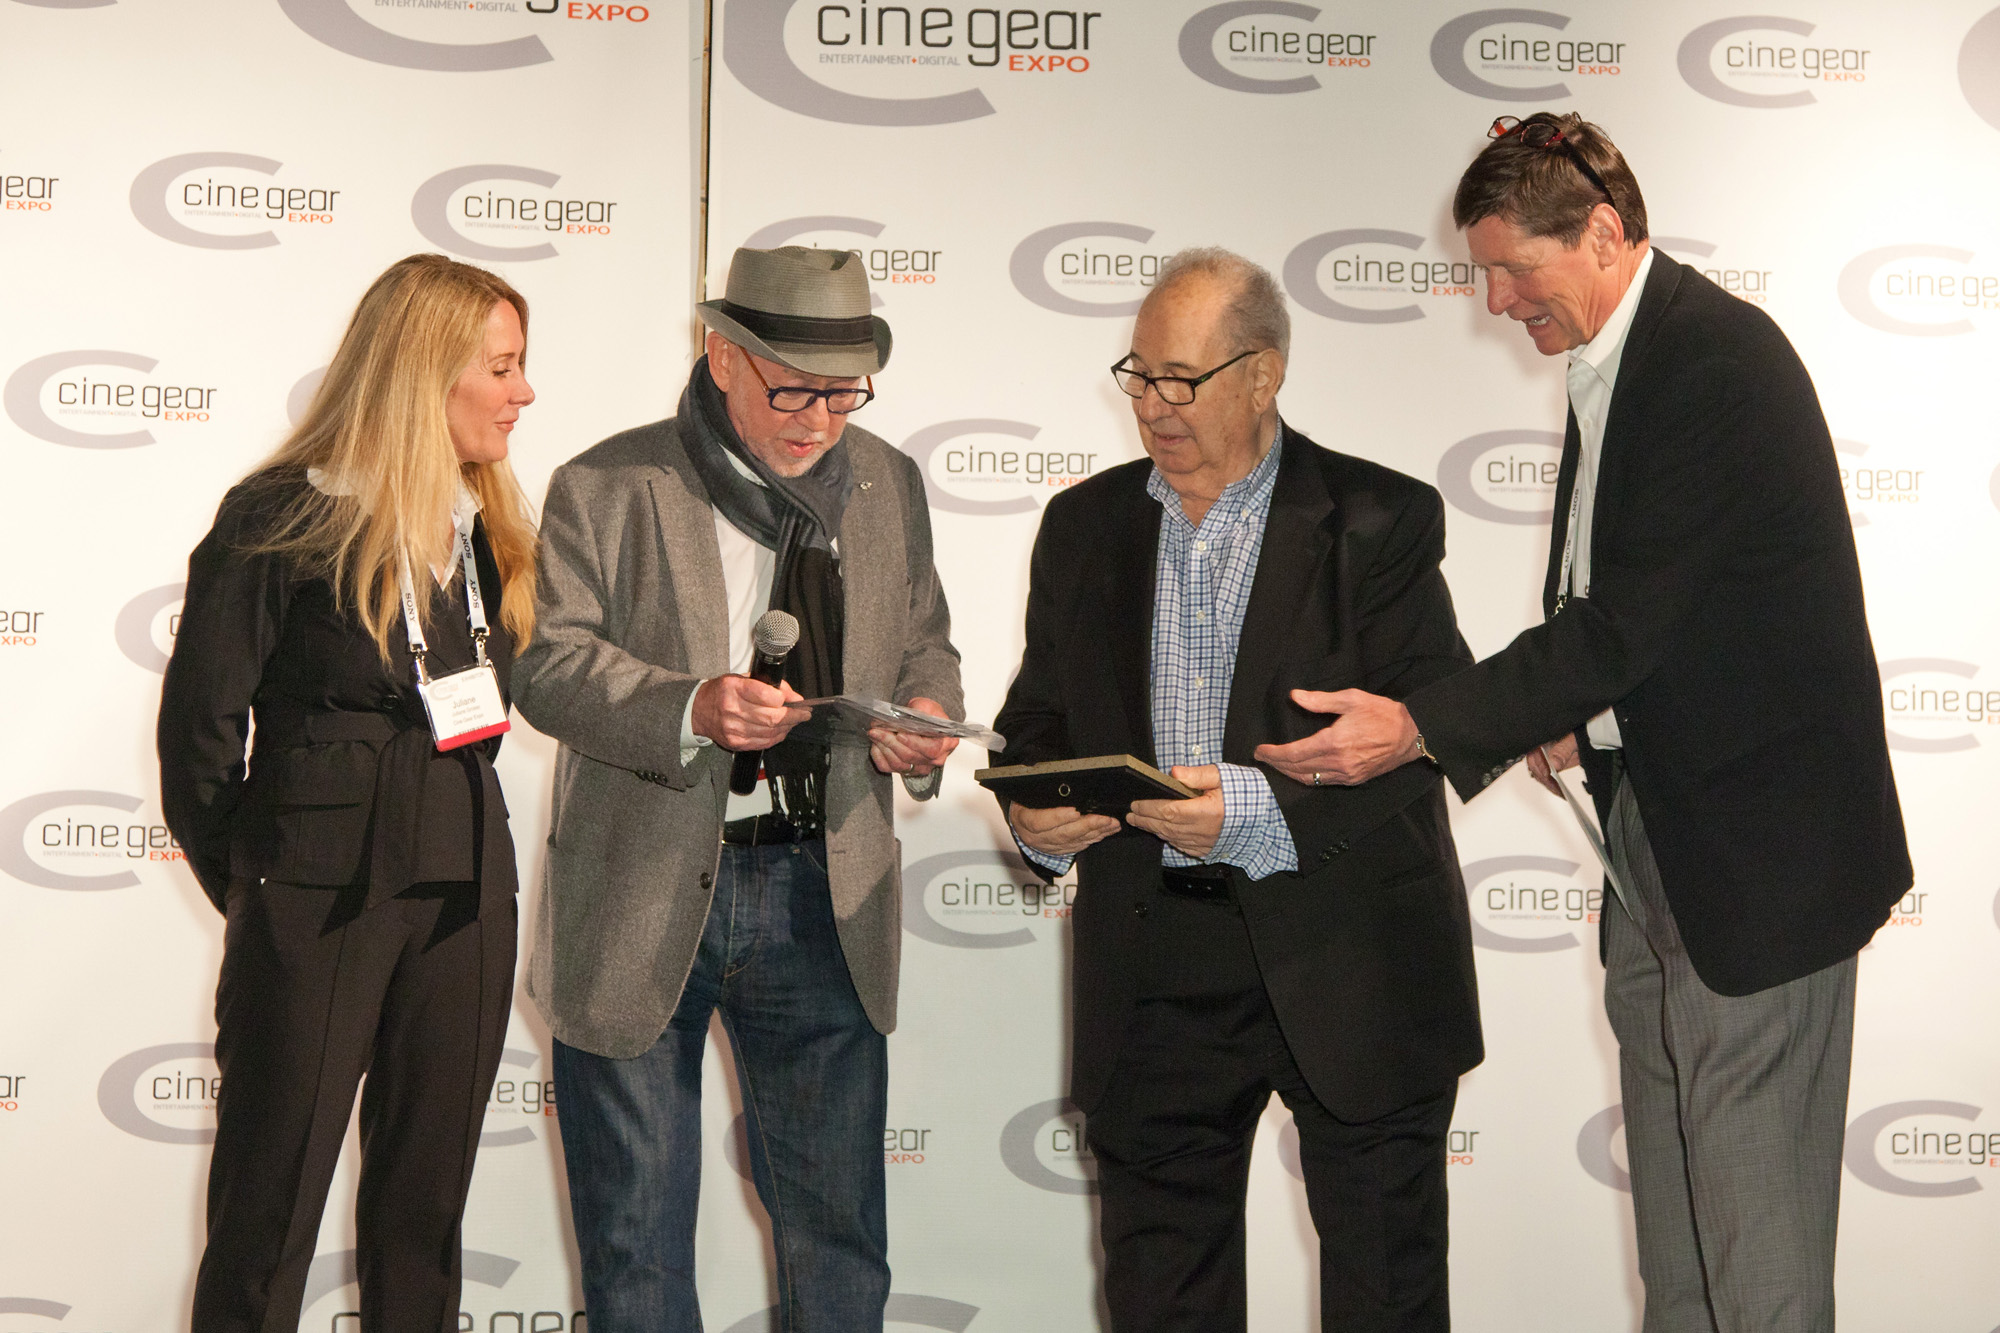 (l-r) Juliane Grosso (Cinegear expo LA owner /organiser), Steve Poster ASC (ICG president) presenting the Legacy award to George Dibie ASC and Karl Kresser (Cinegear expo LA owner /organiser). Photo by George Leon/Filmcastlive